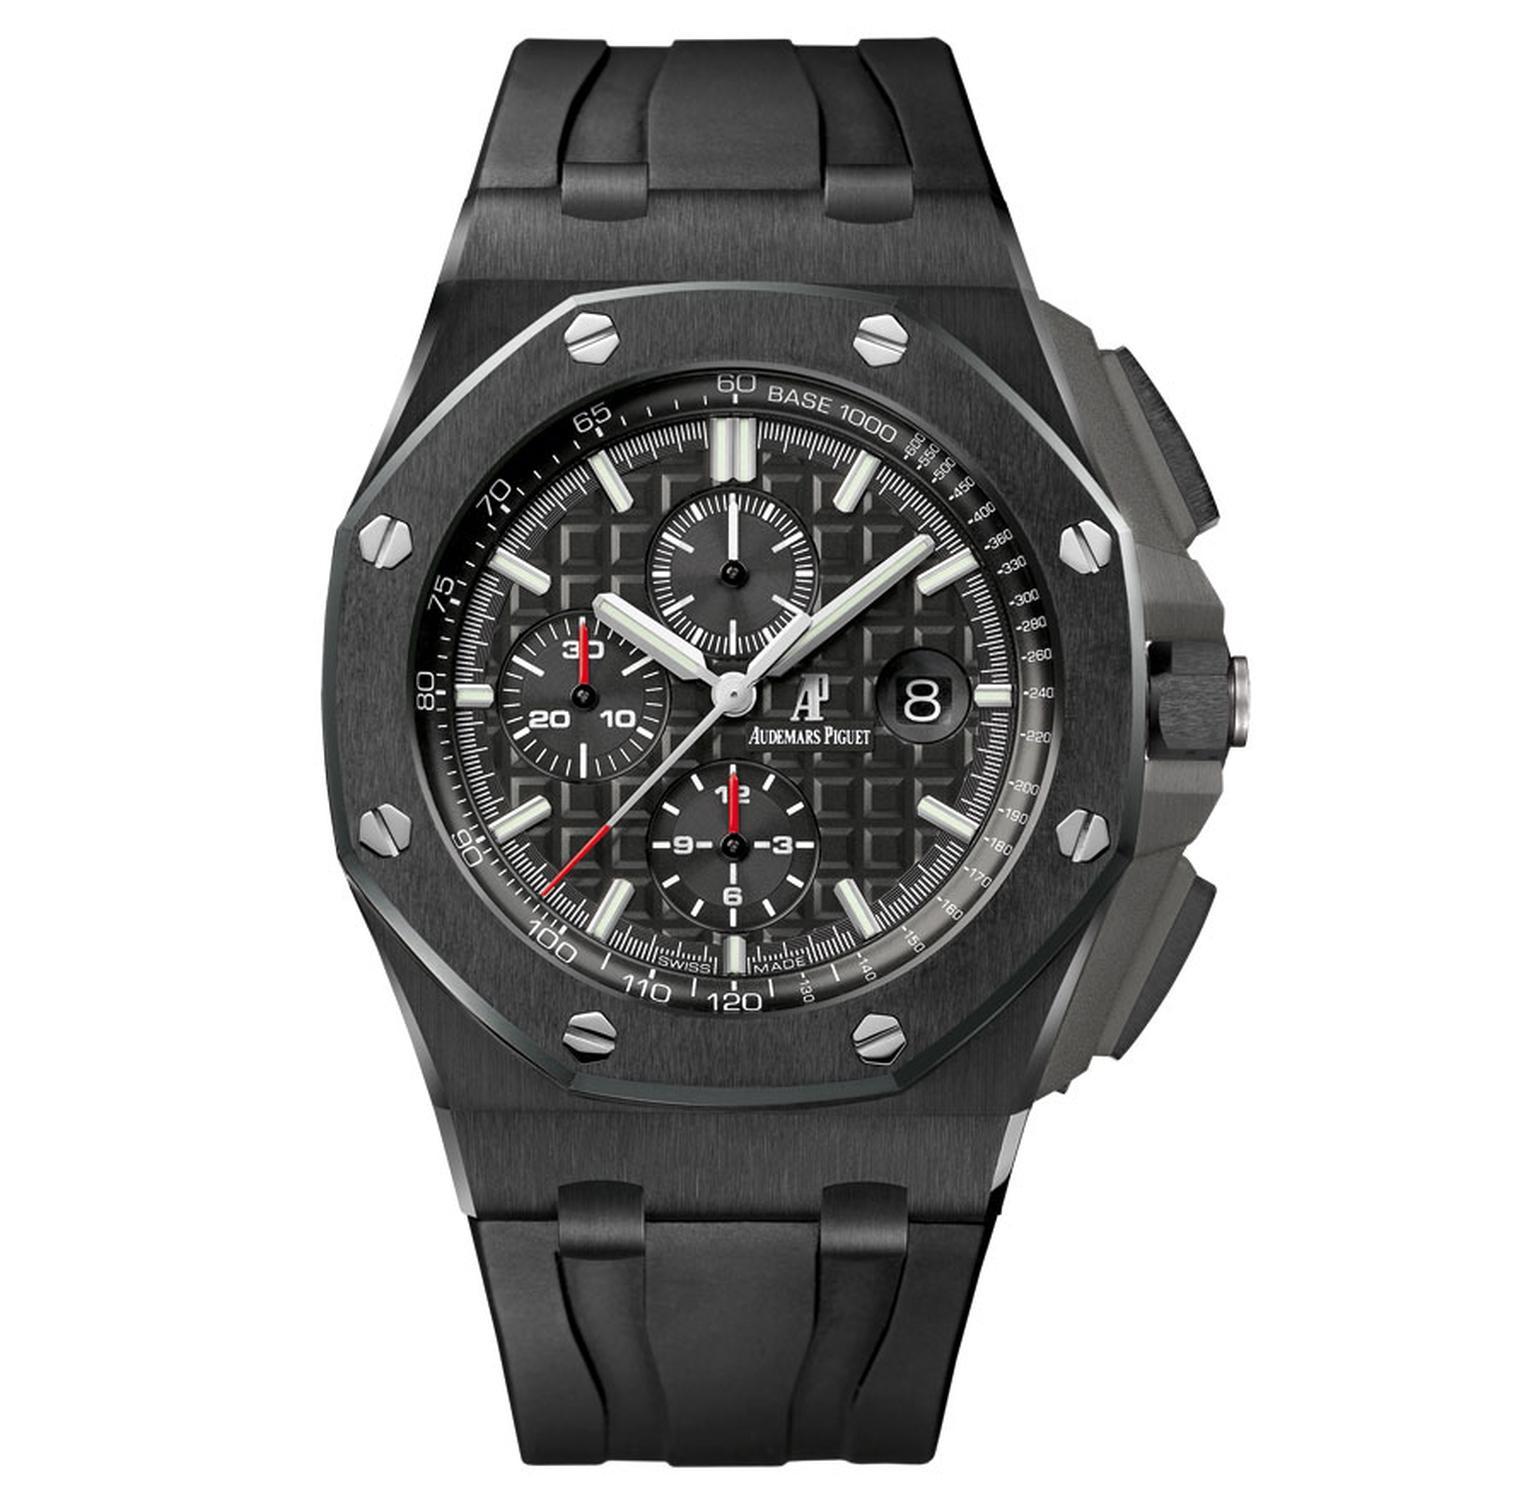 Audemars-Piguet-Royal-Oak-Offshore-Chronograph.jpg